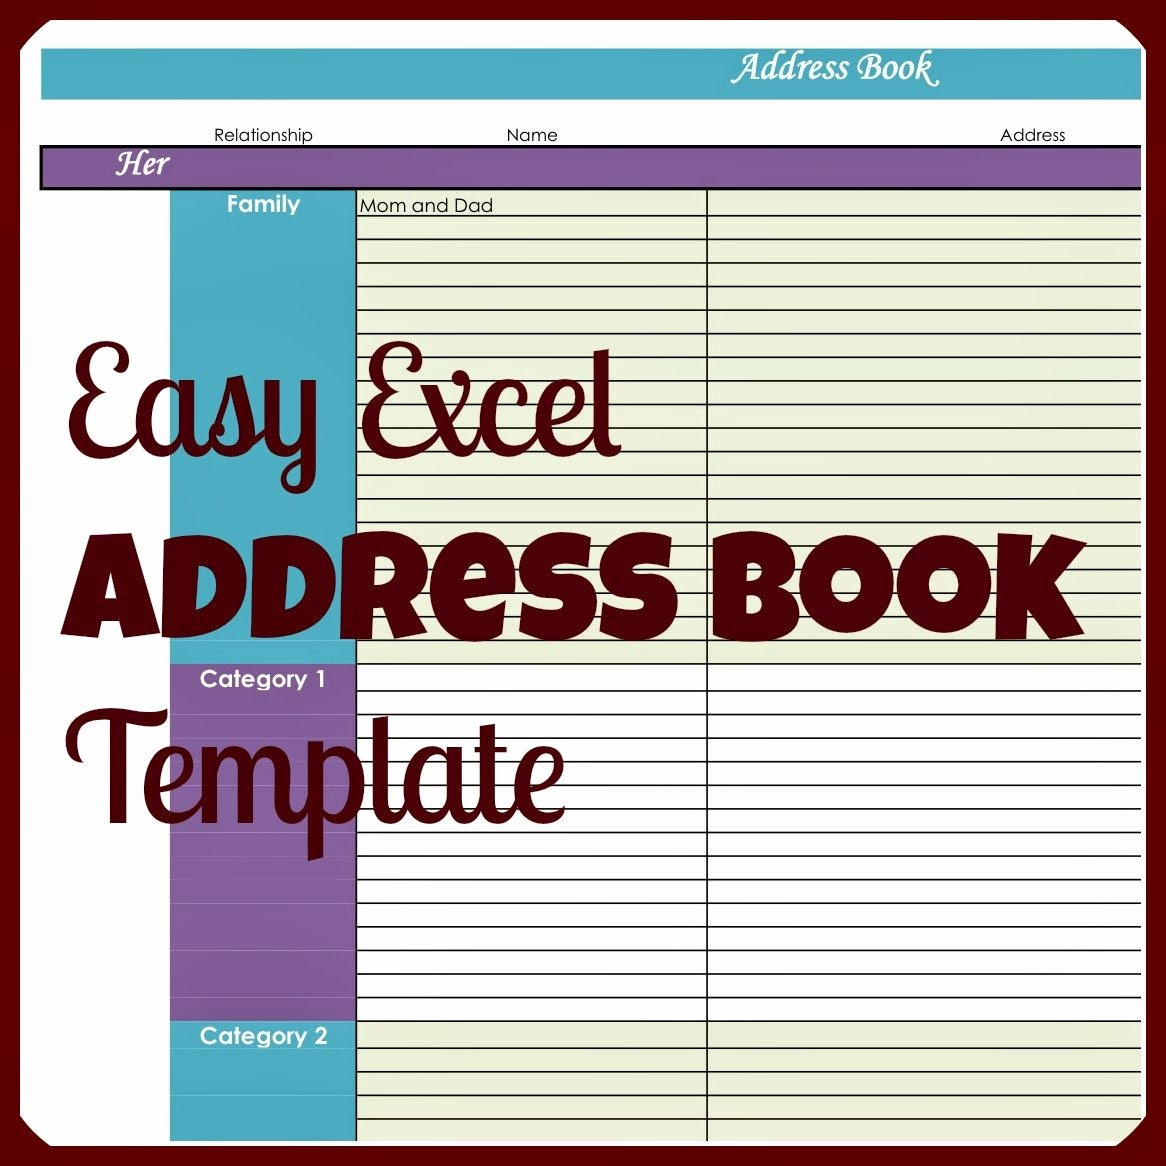 Address Book Template Free Unique Laura S Plans Easy Excel Address Book Template